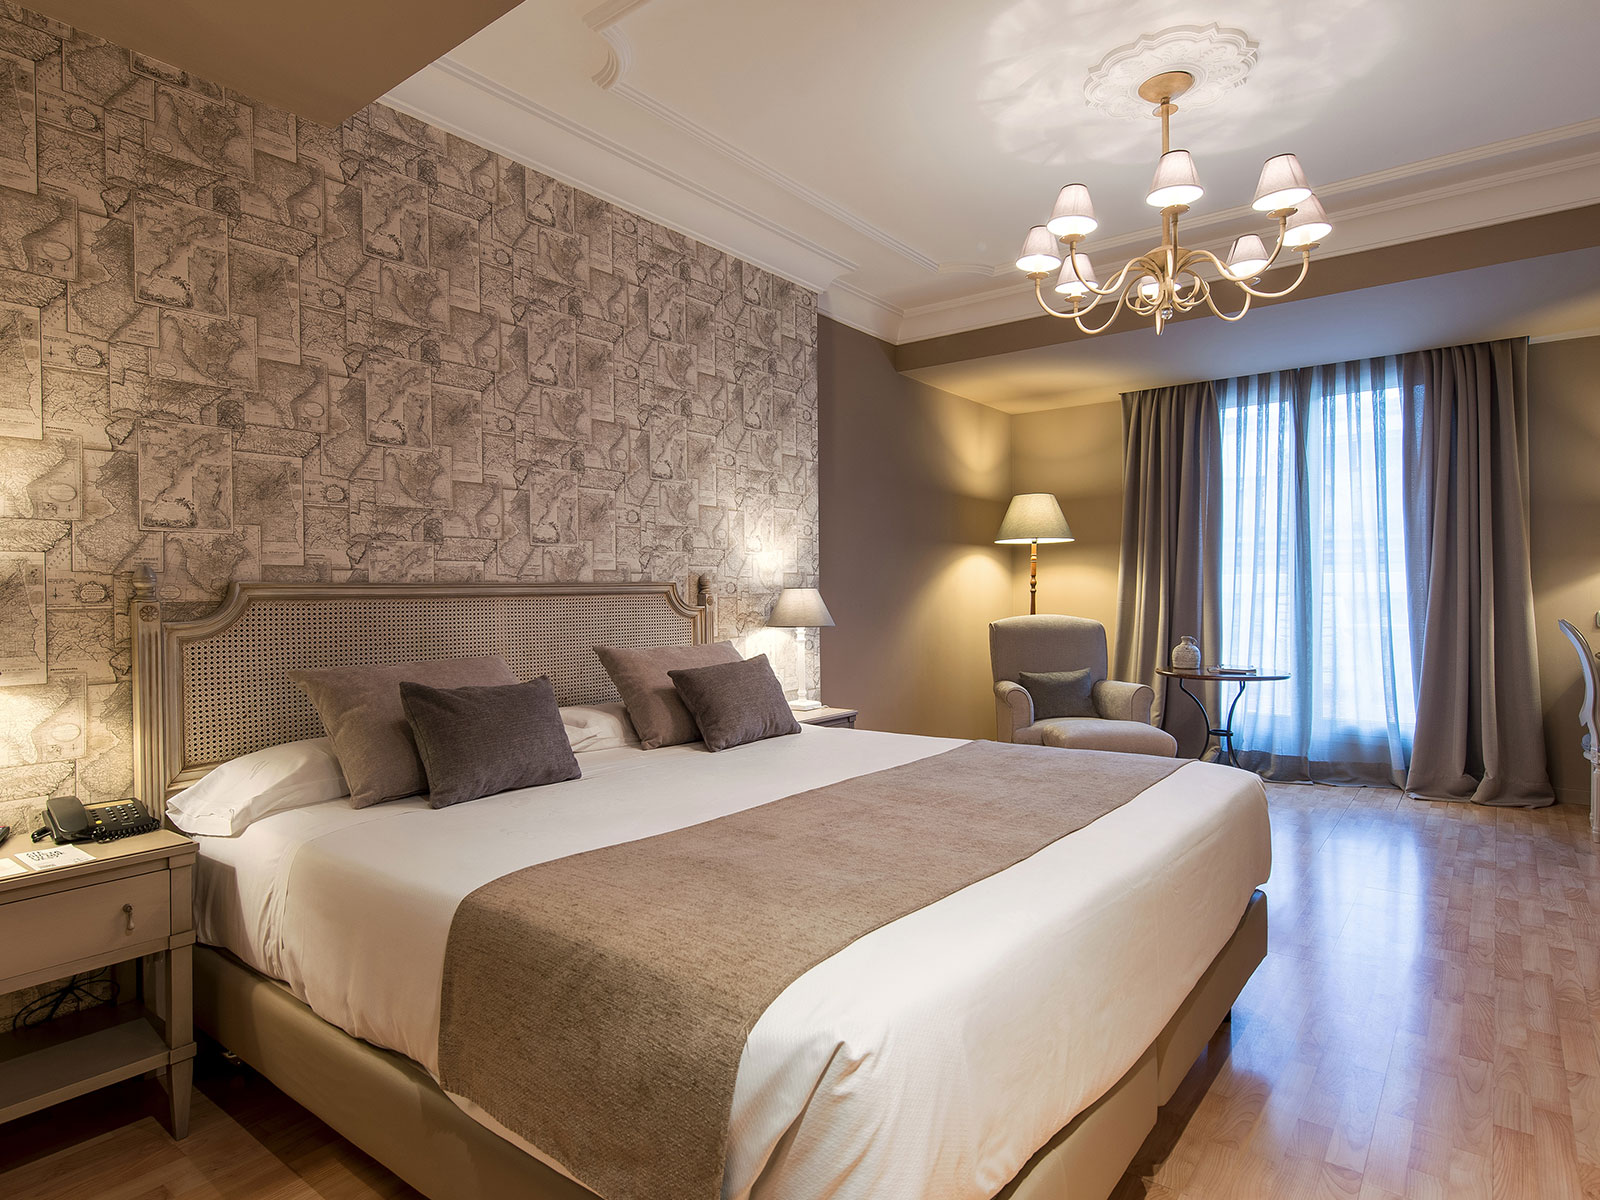 Double Room - Rooms Hotel Valencia Lys - Vincci Hotels